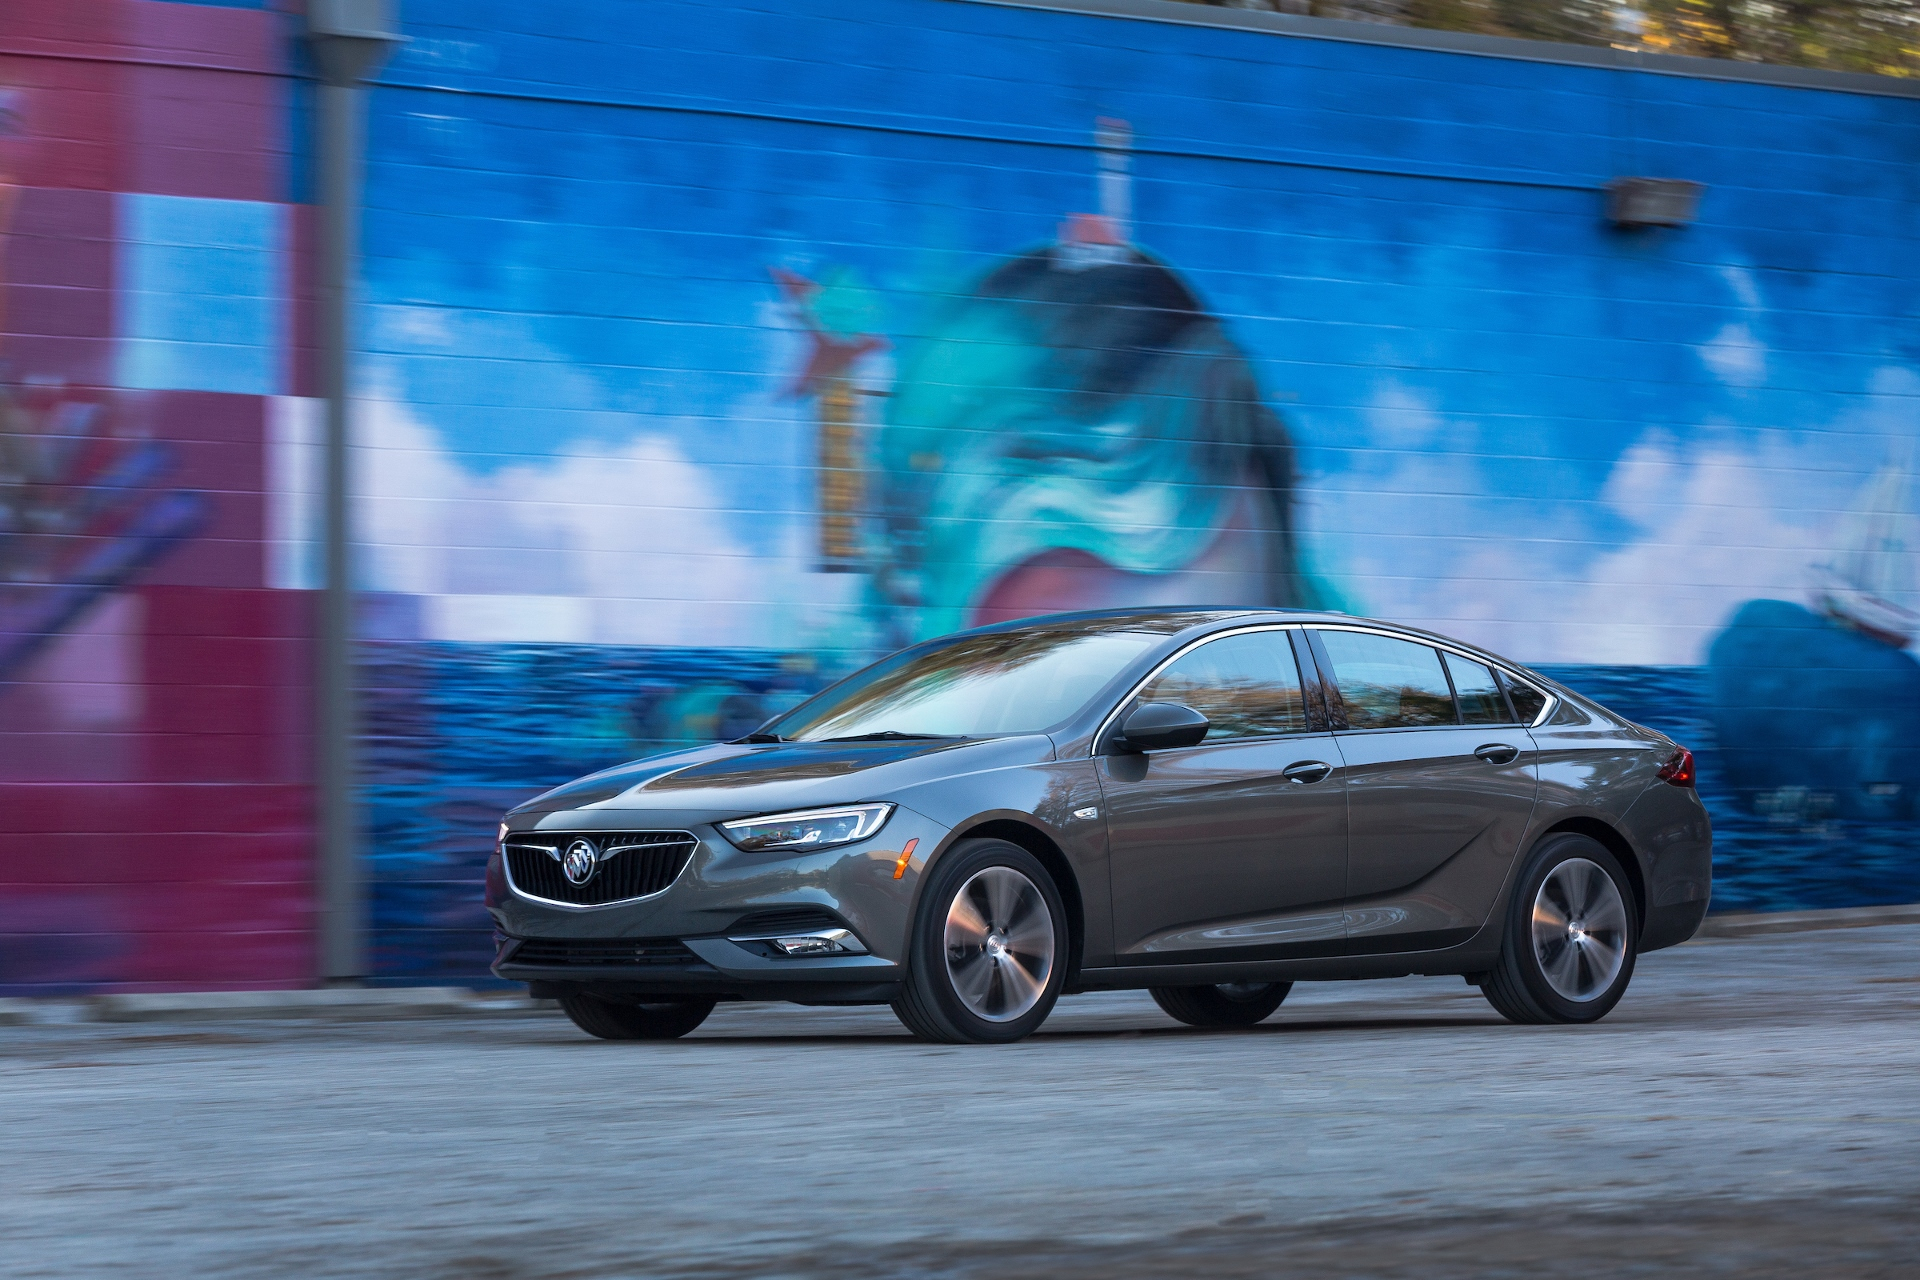 2018 Buick Regal Sportback First Drive Review: The Crossover New 2022 Buick Regal Sportback Specs, Used, 0-60